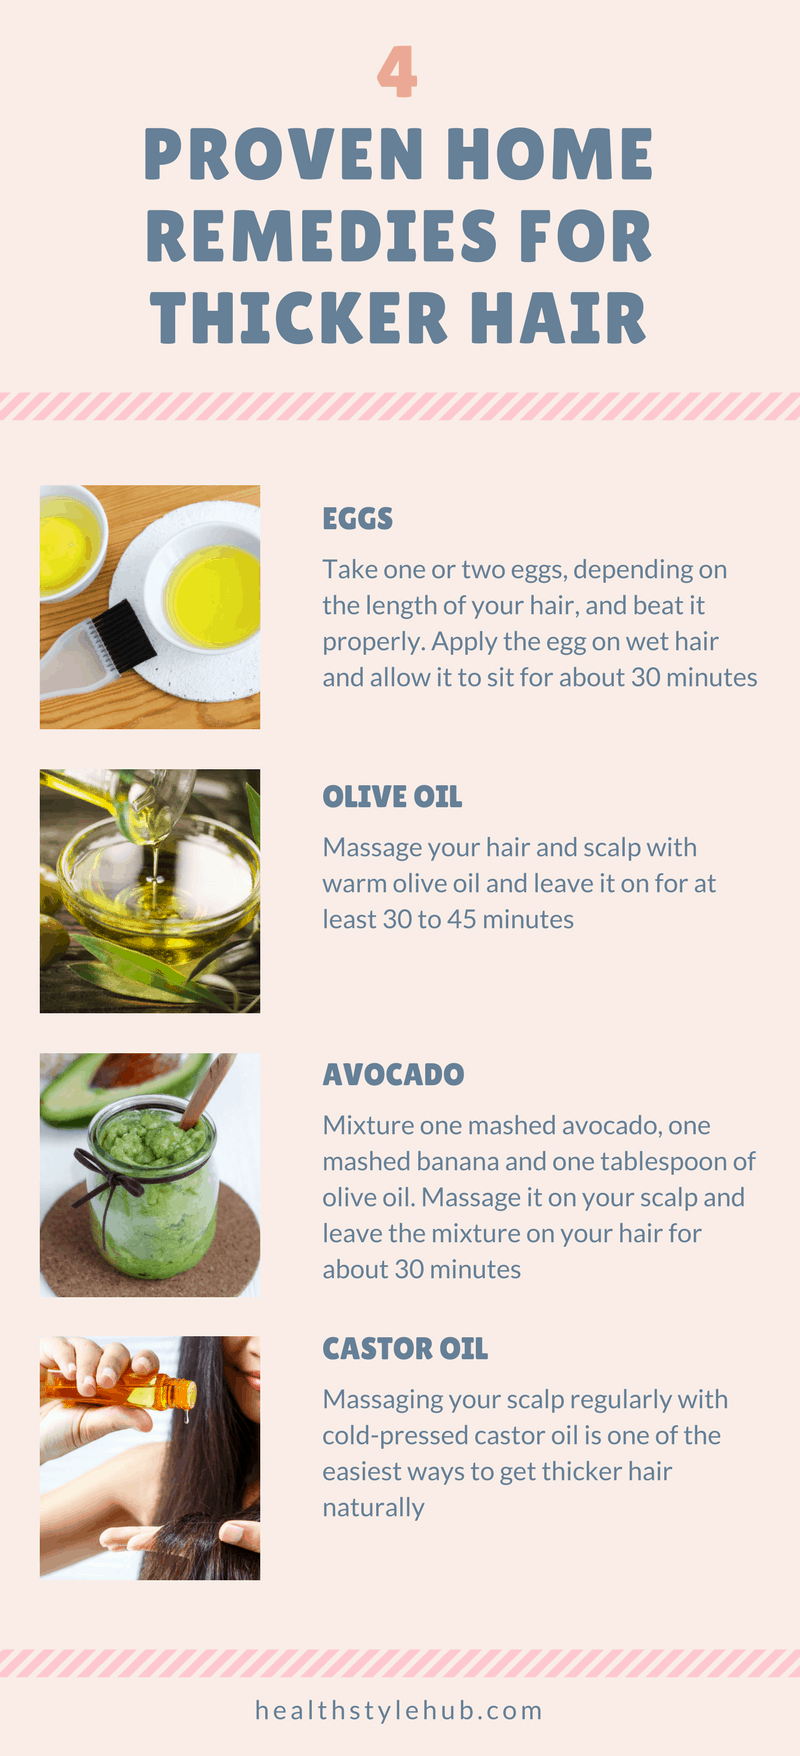 4 Proven Home Remedies for Thicker Hair